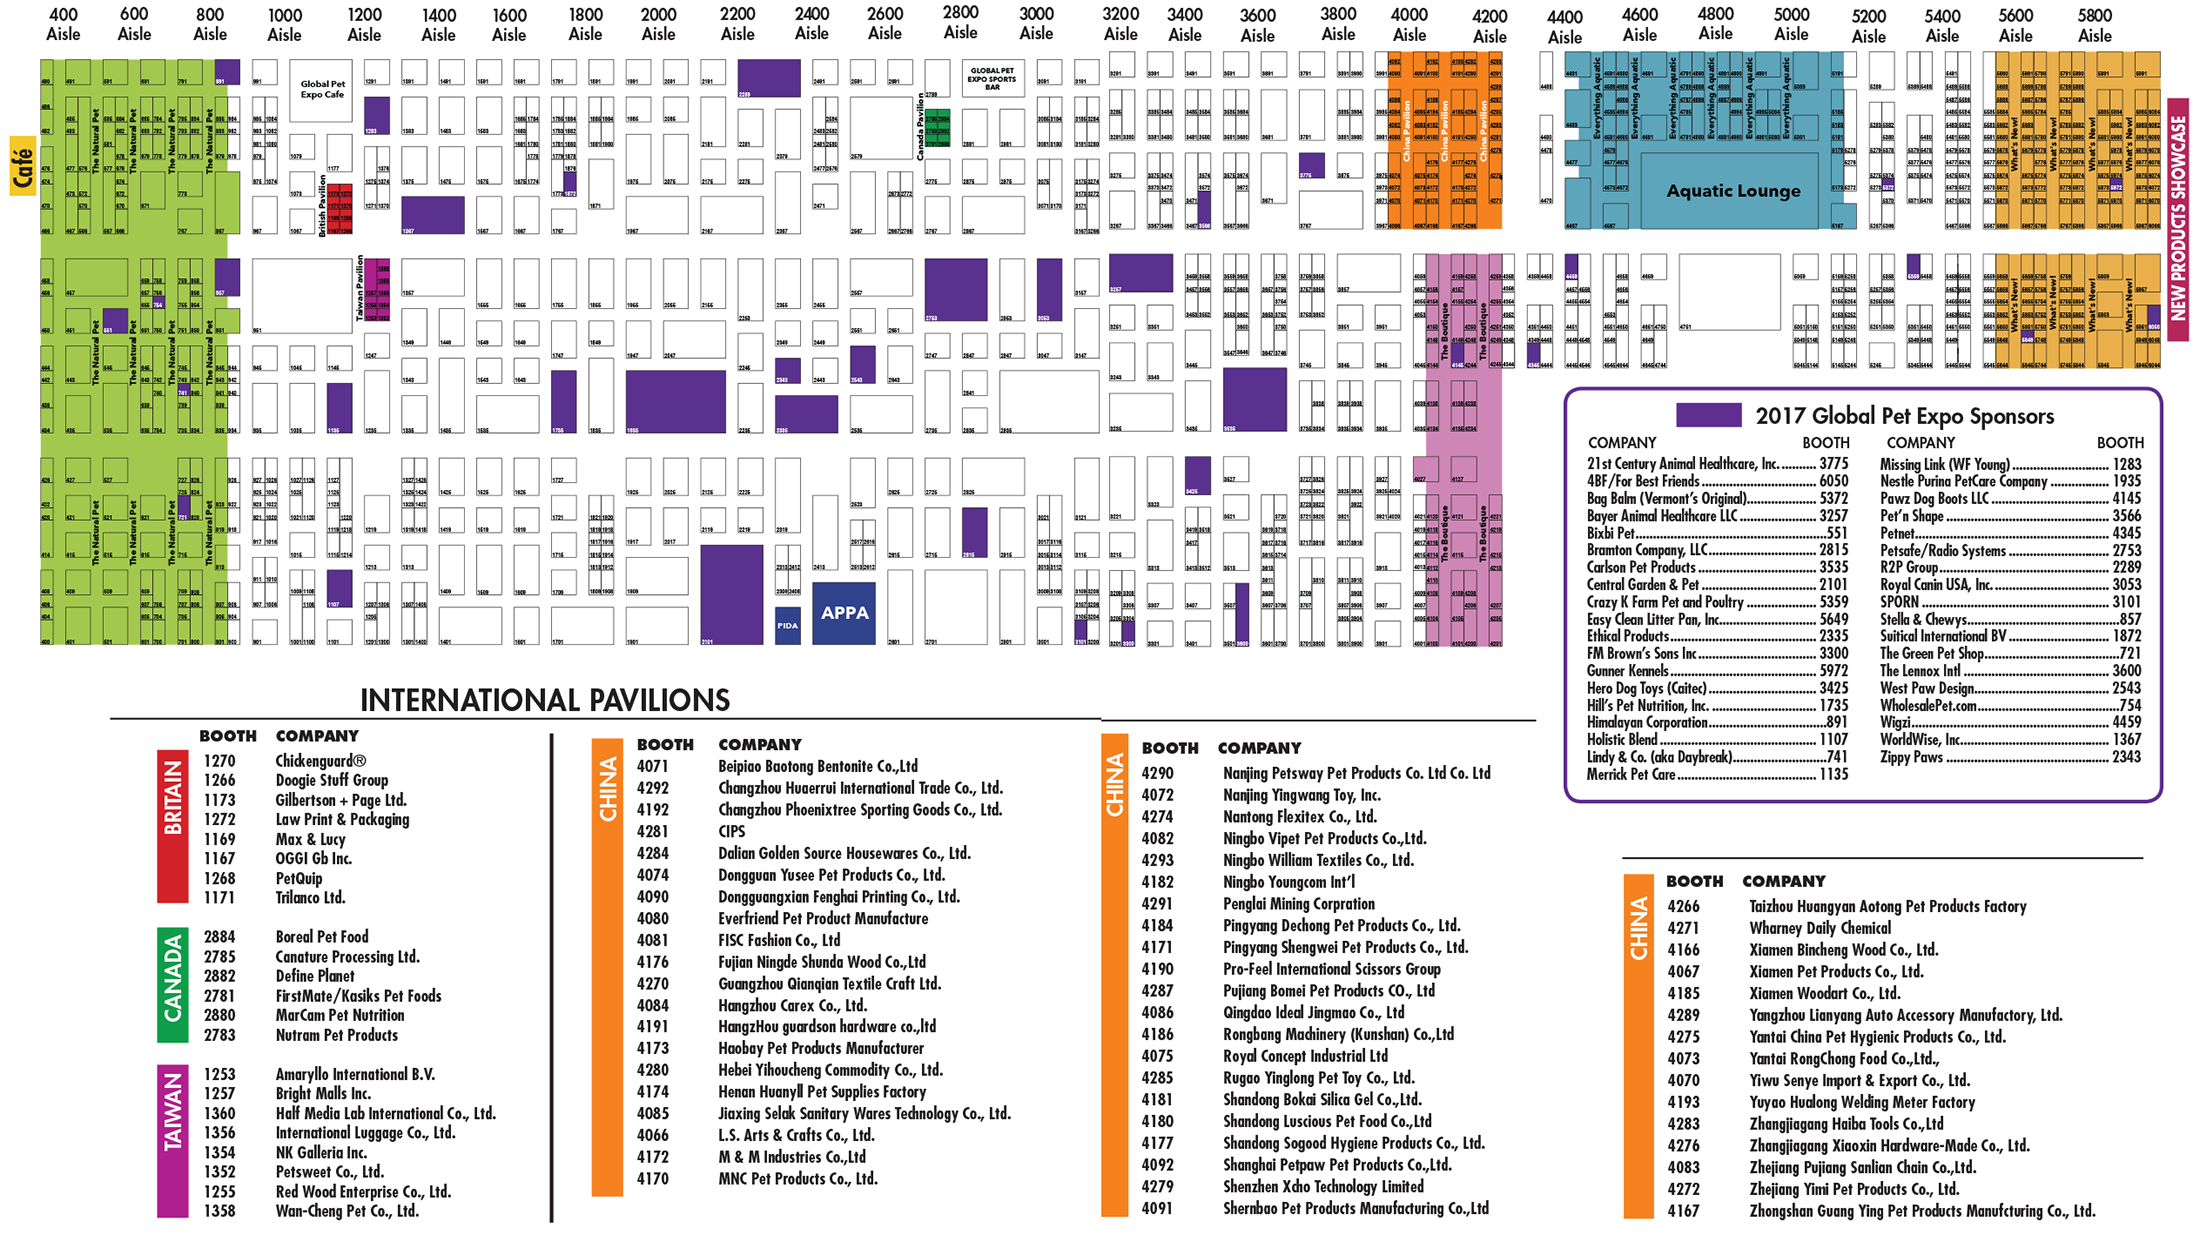 27c8b403f480 Pet Business - Global Pet Expo Show Directory 2017 - Exhibitor Floor Plan